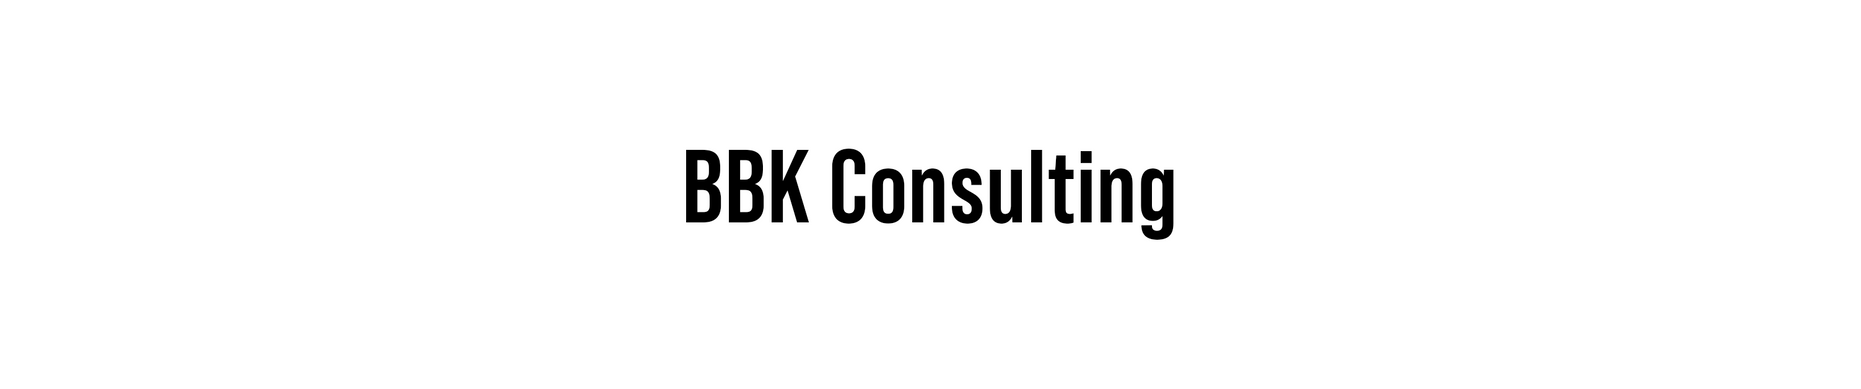 BBKConsulting.png